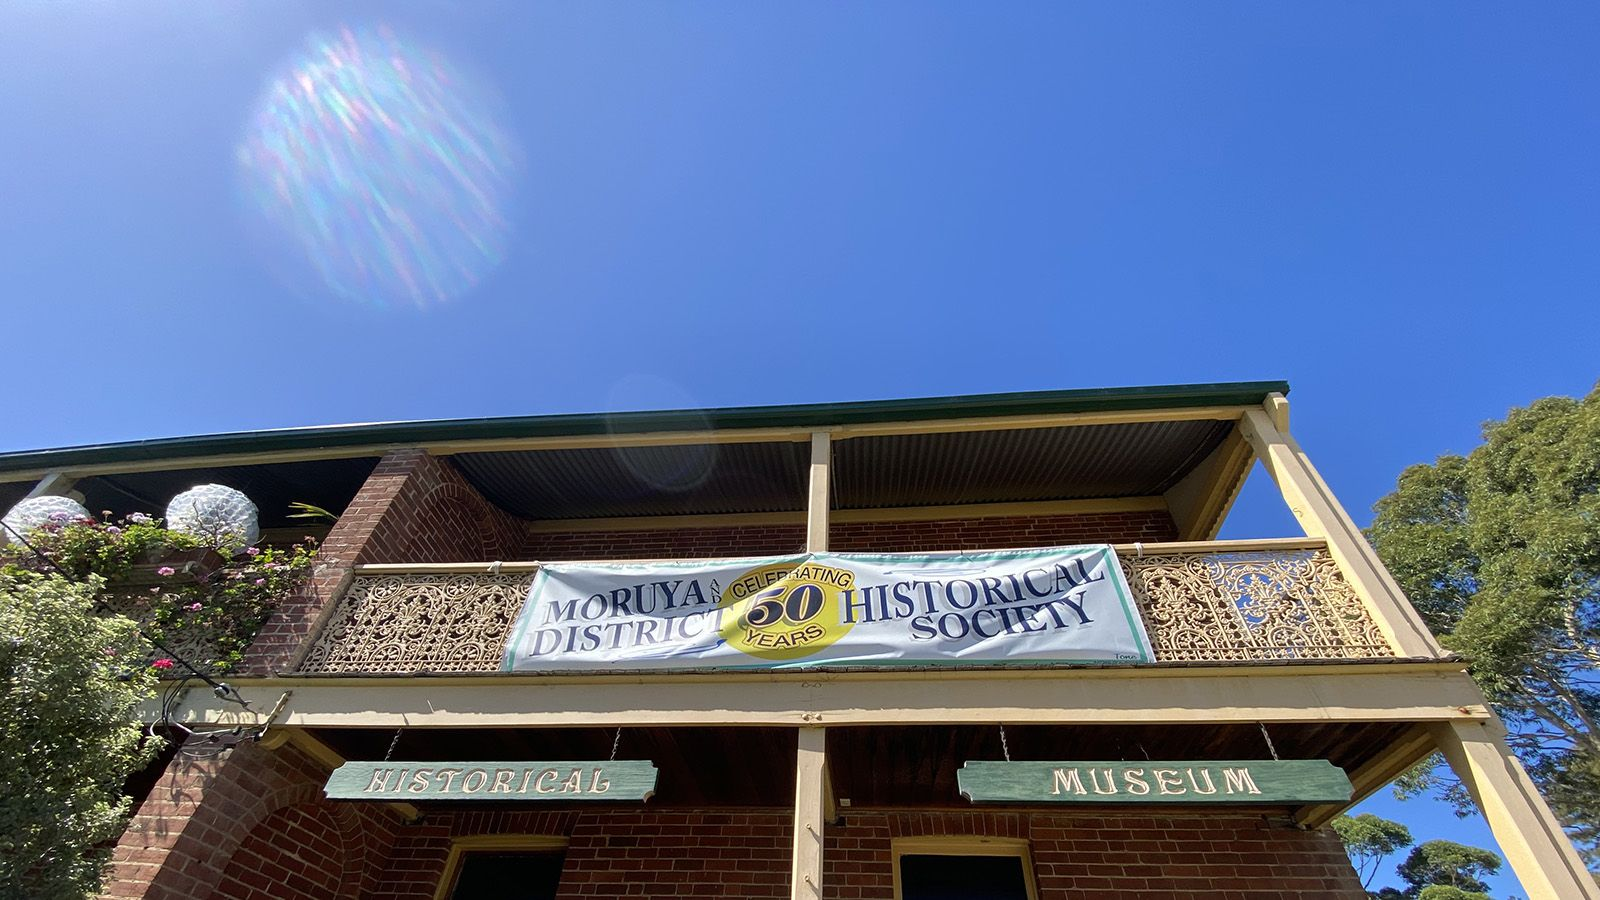 The external facade of the Moruya Museum with a banner titled Moruya Historical Society banner image